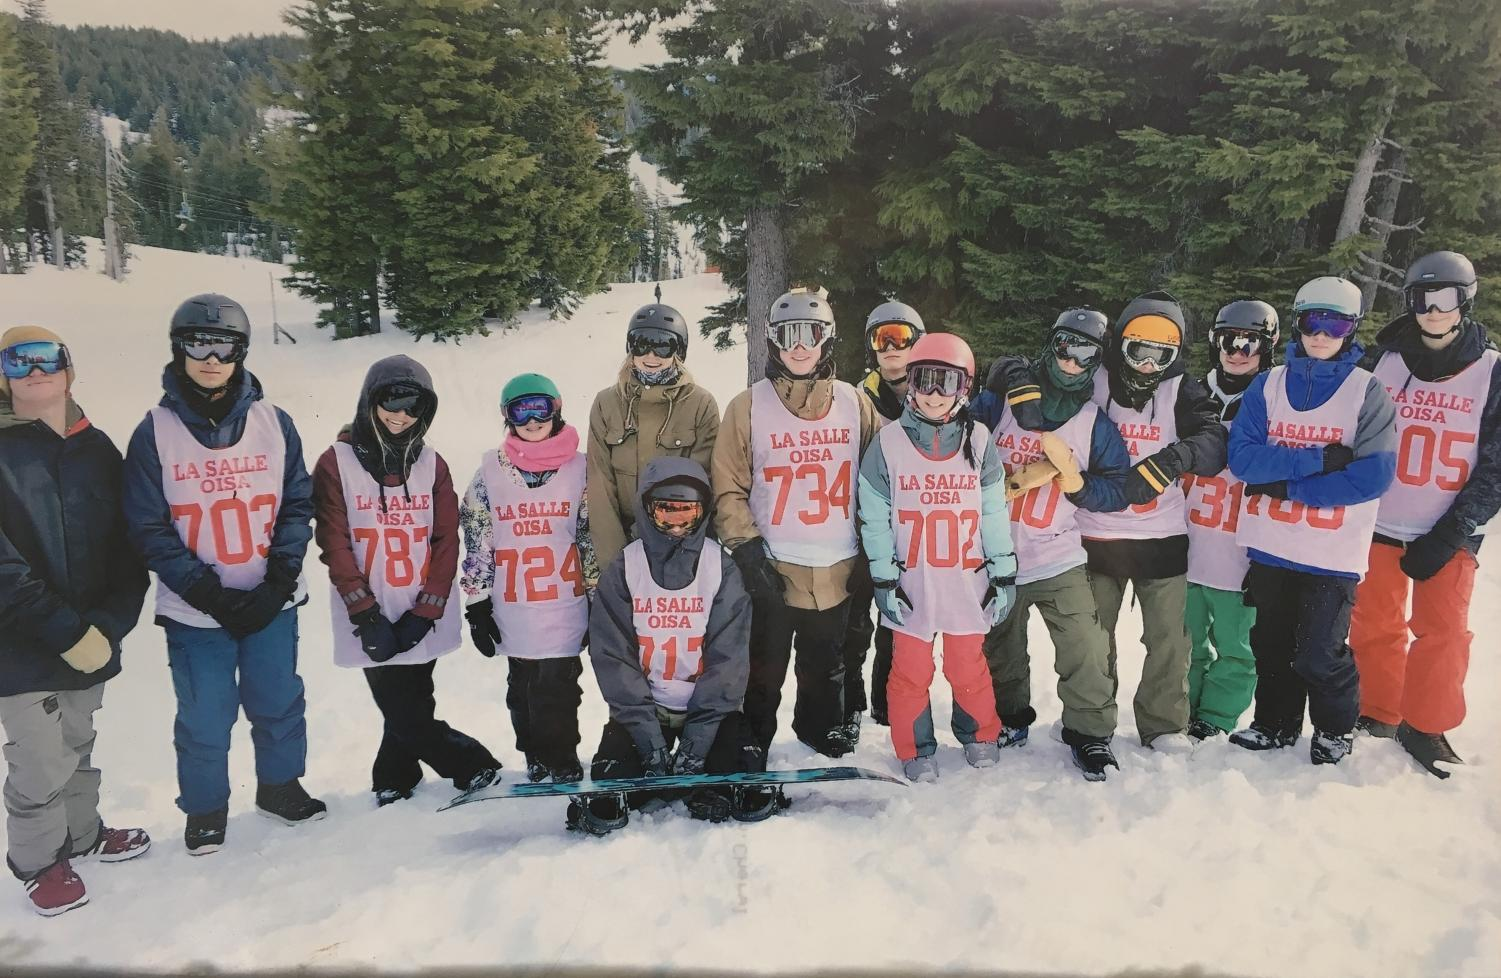 The snowboard team from 2017.